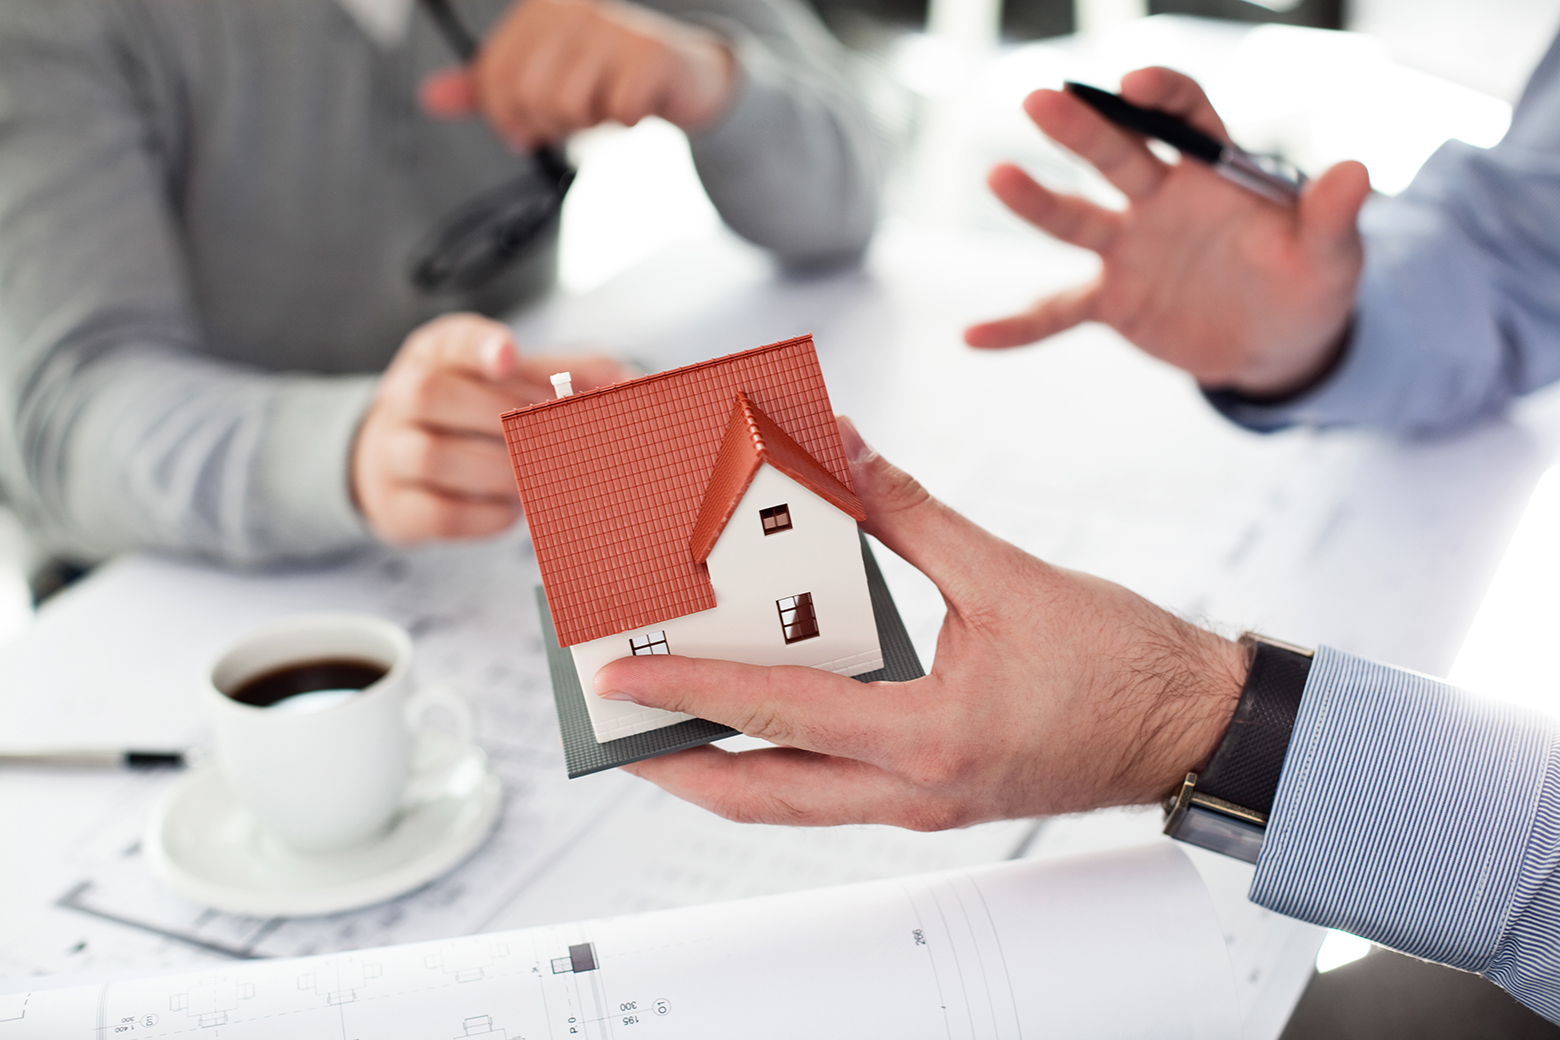 Launching the home buying process